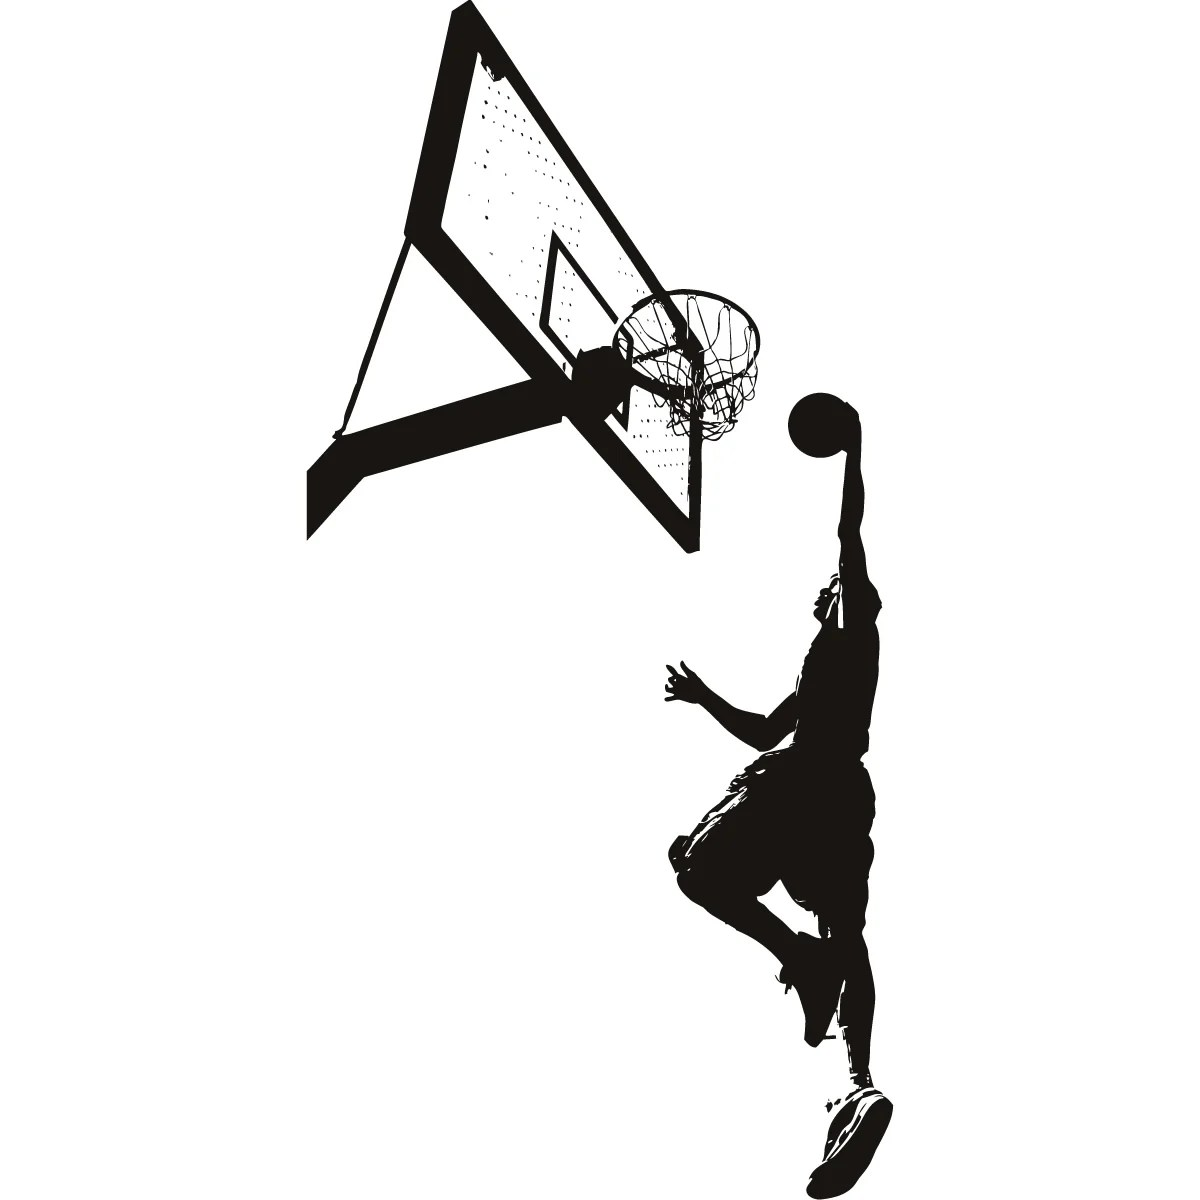 Basketball Slam Dunk Sports And Hobbies Wall Art Decal